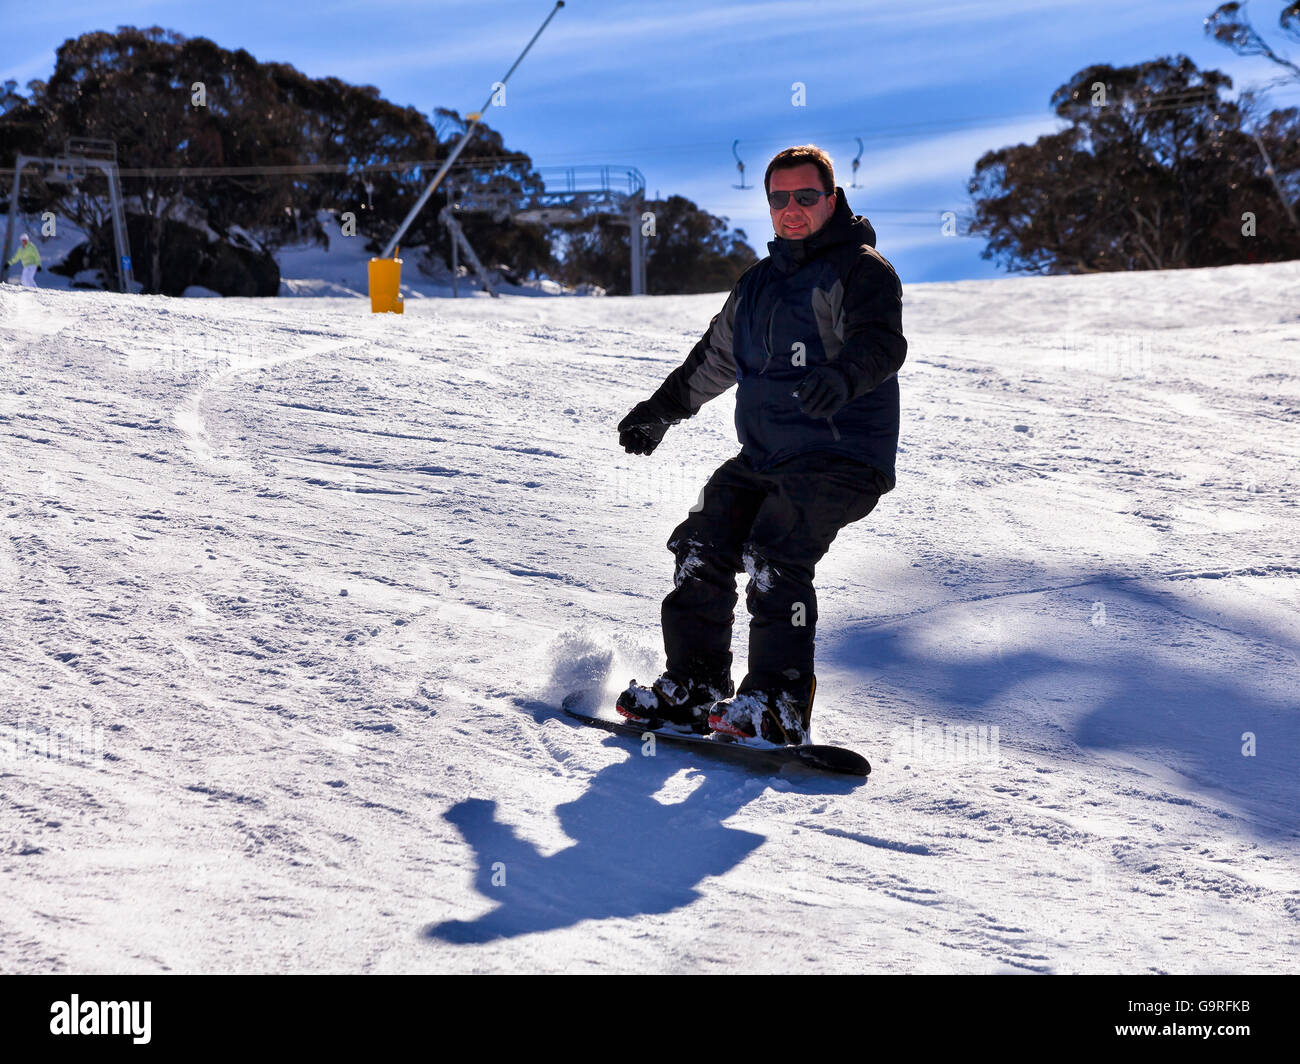 Happy snowboarder slides down the track in Snowy Mountains ski resort of Perisher Valley, kosciuszko national park. - Stock Image